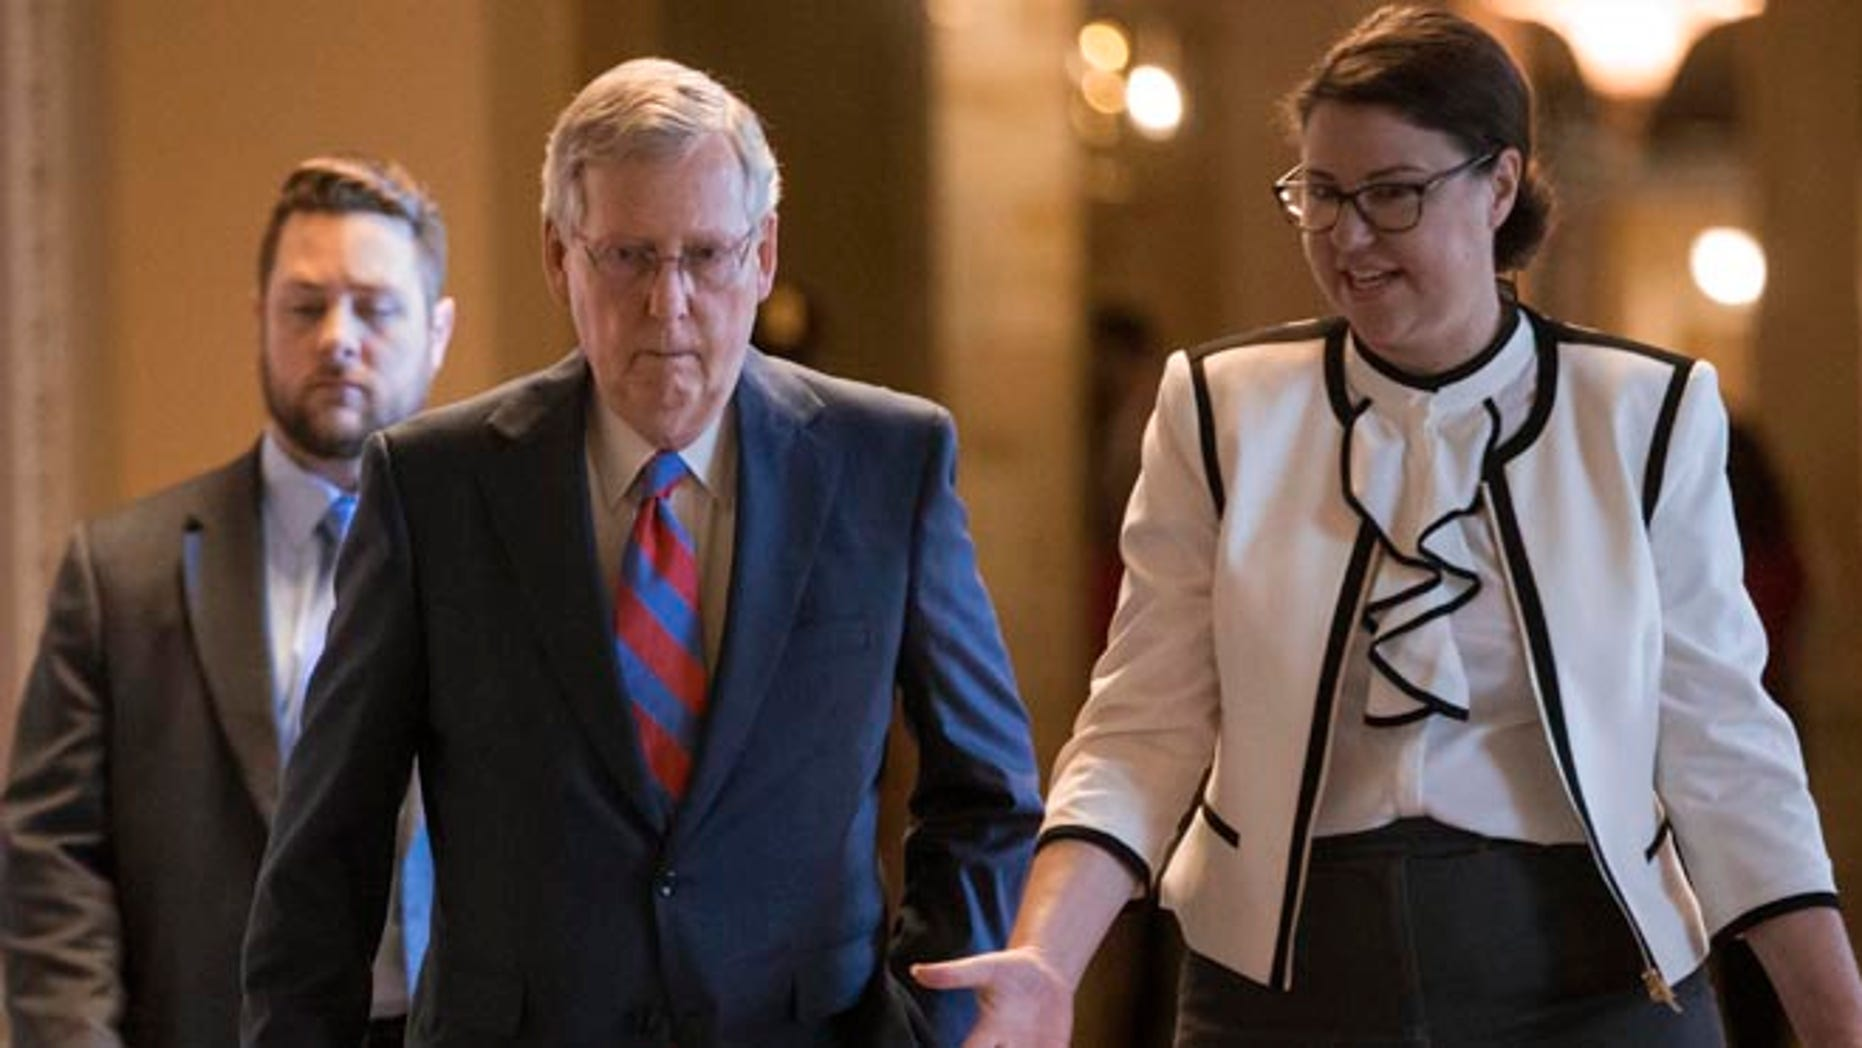 Senate Majority Leader Mitch McConnell of Ky. walks to the Senate chamber on Capitol Hill, Wednesday, June 29, 2016.